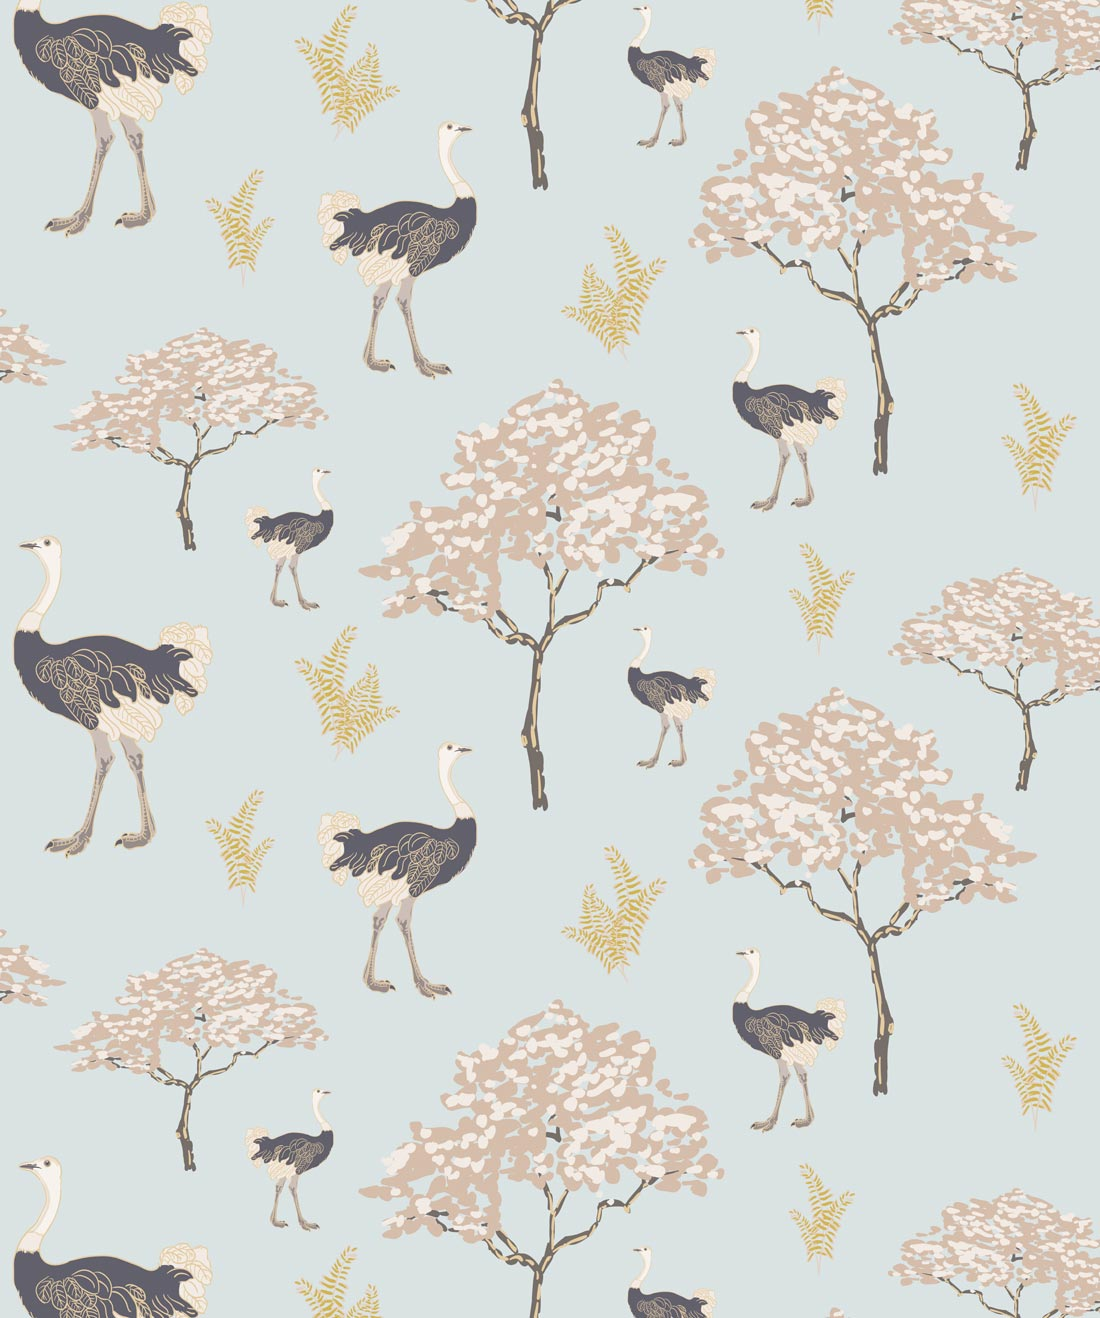 Savannah Ostrich Wallpaper